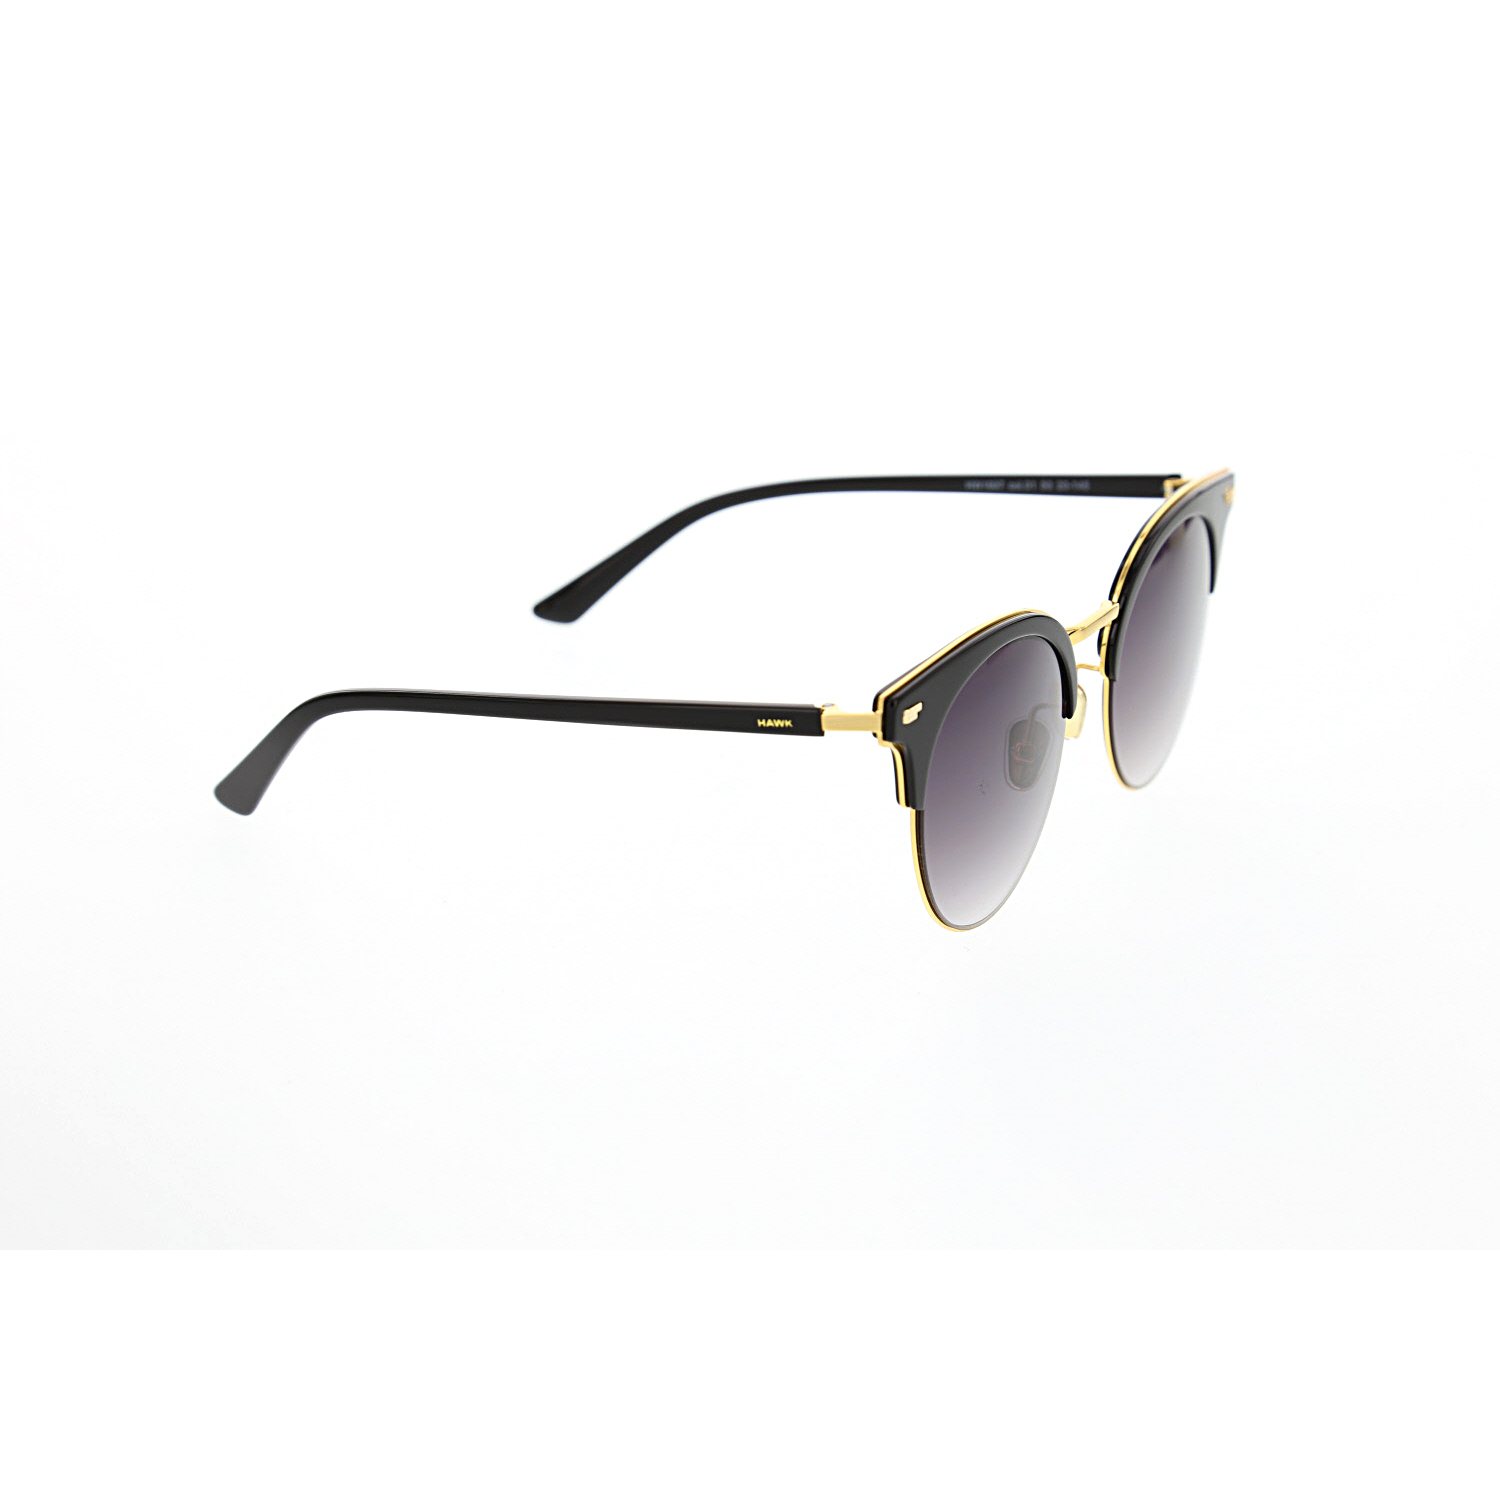 Women's sunglasses hw 1697 01 clubmaster gold organic oval aval 50-20-145 hawk